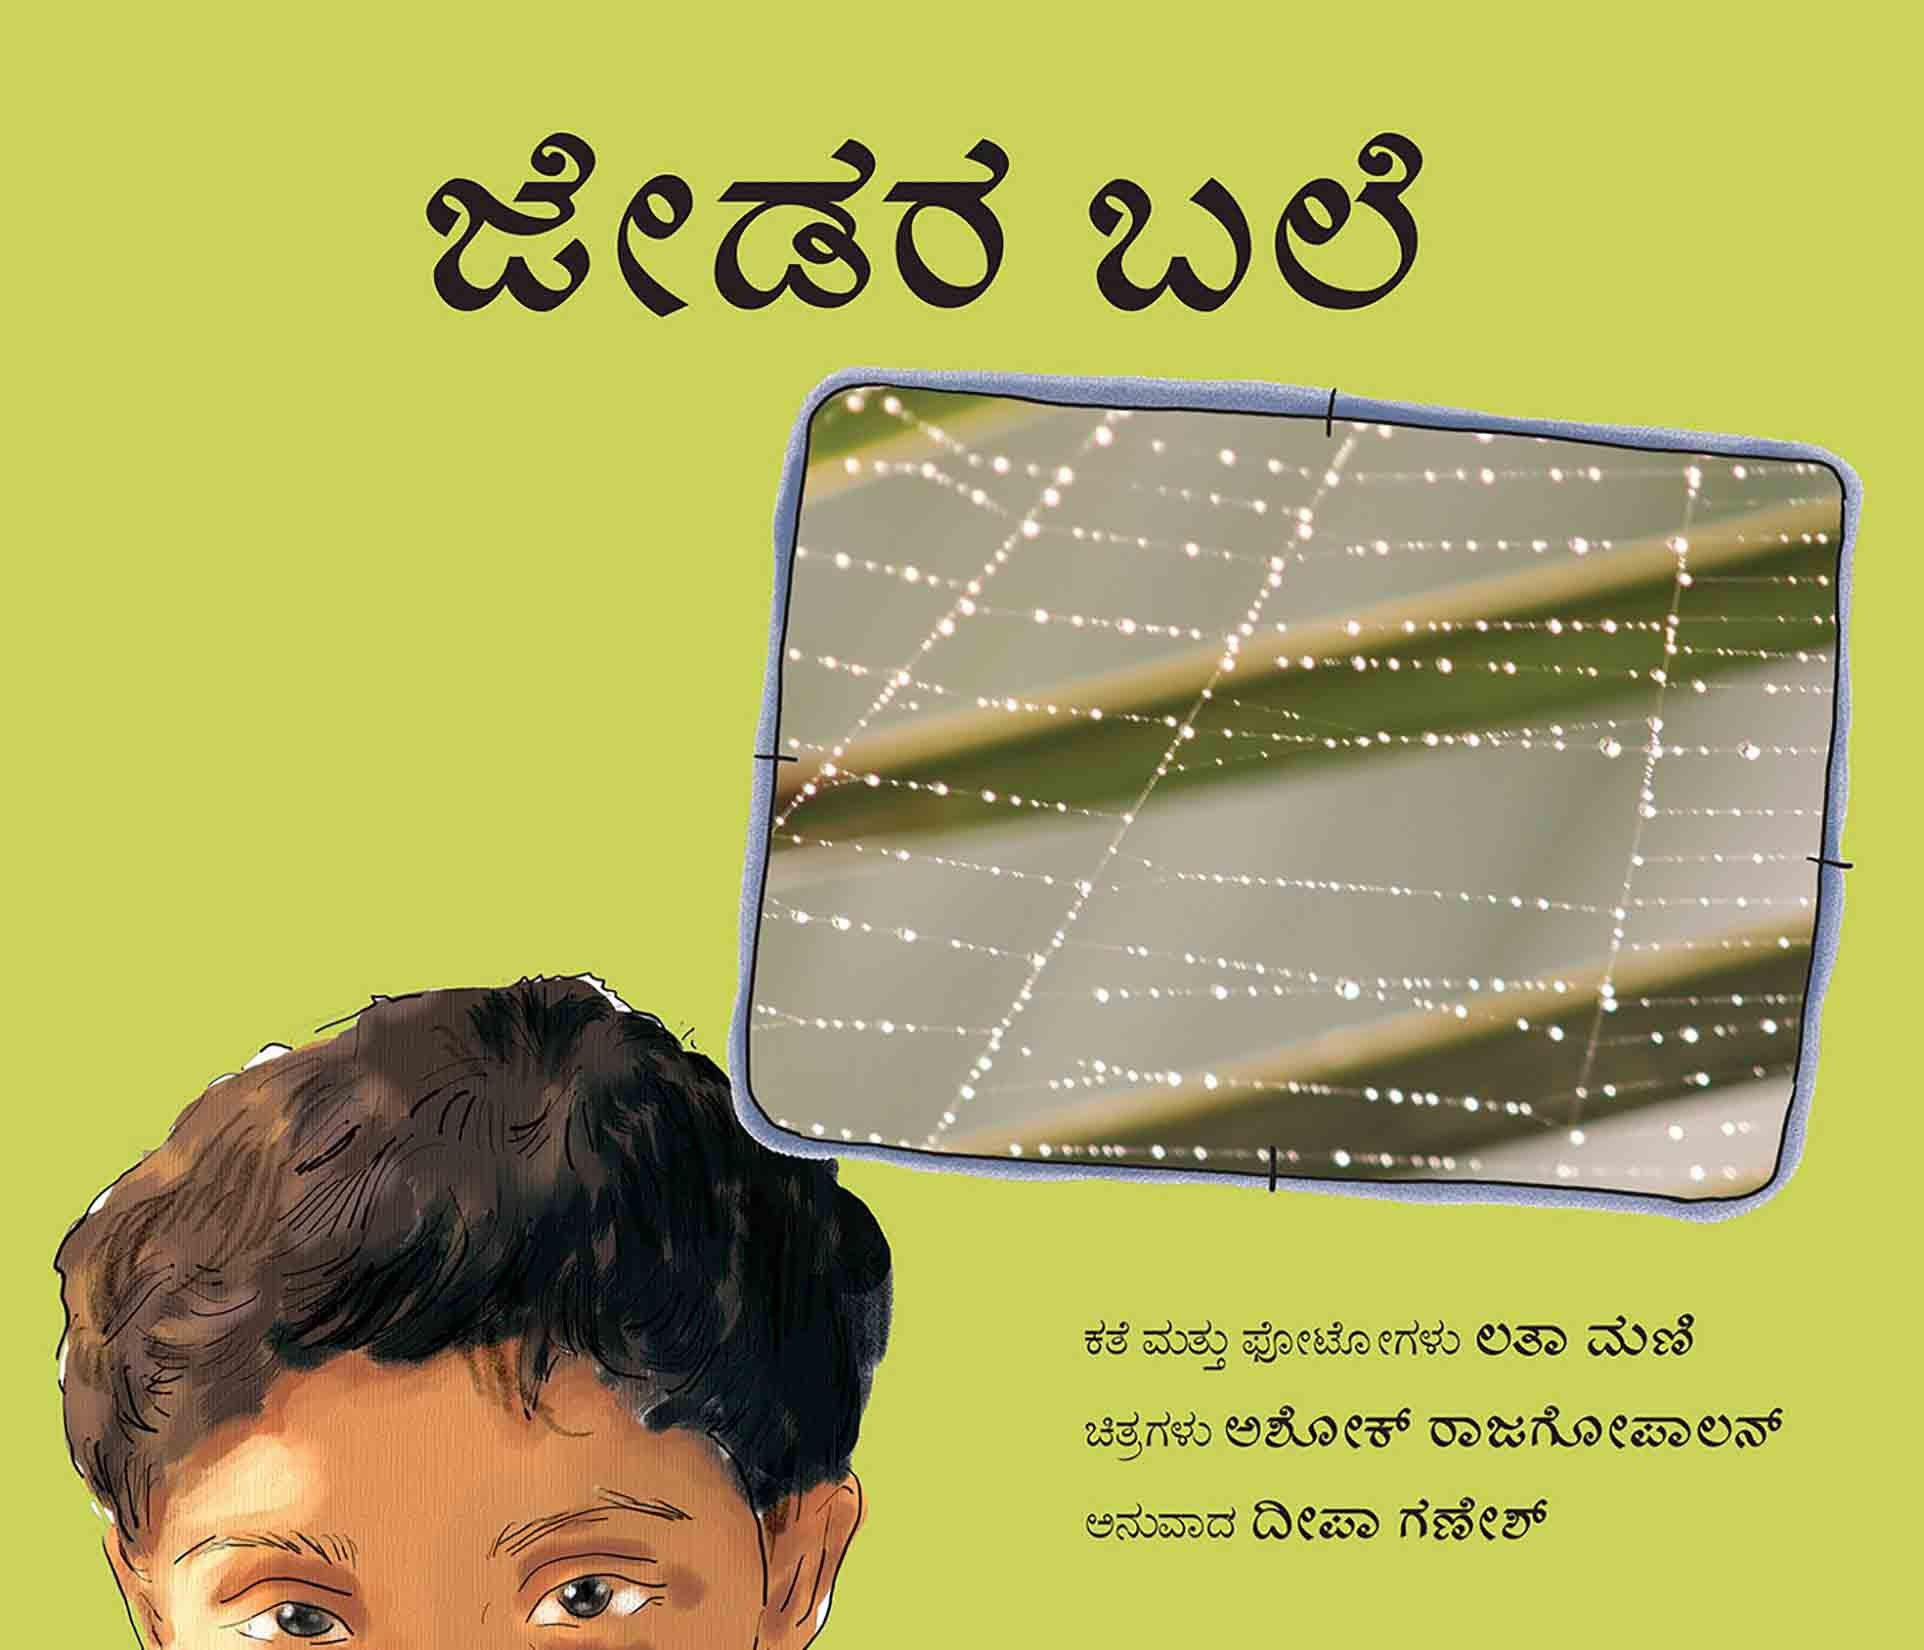 The Spider's Web/Jedara Bale (Kannada)